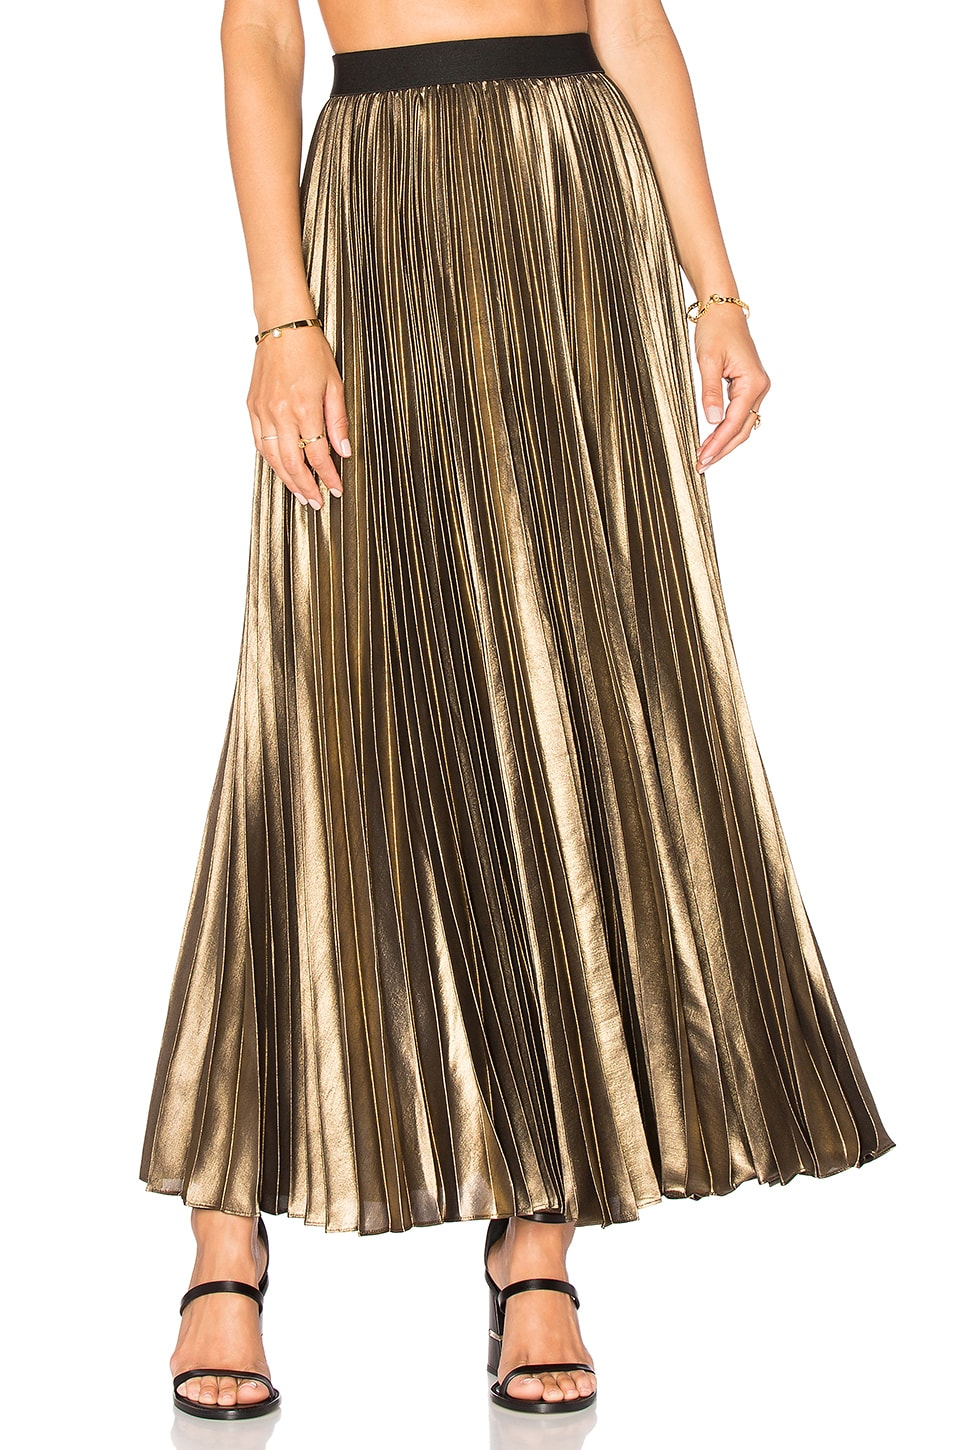 BCBGMAXAZRIA Pleated Maxi Skirt in Black Gold | REVOLVE